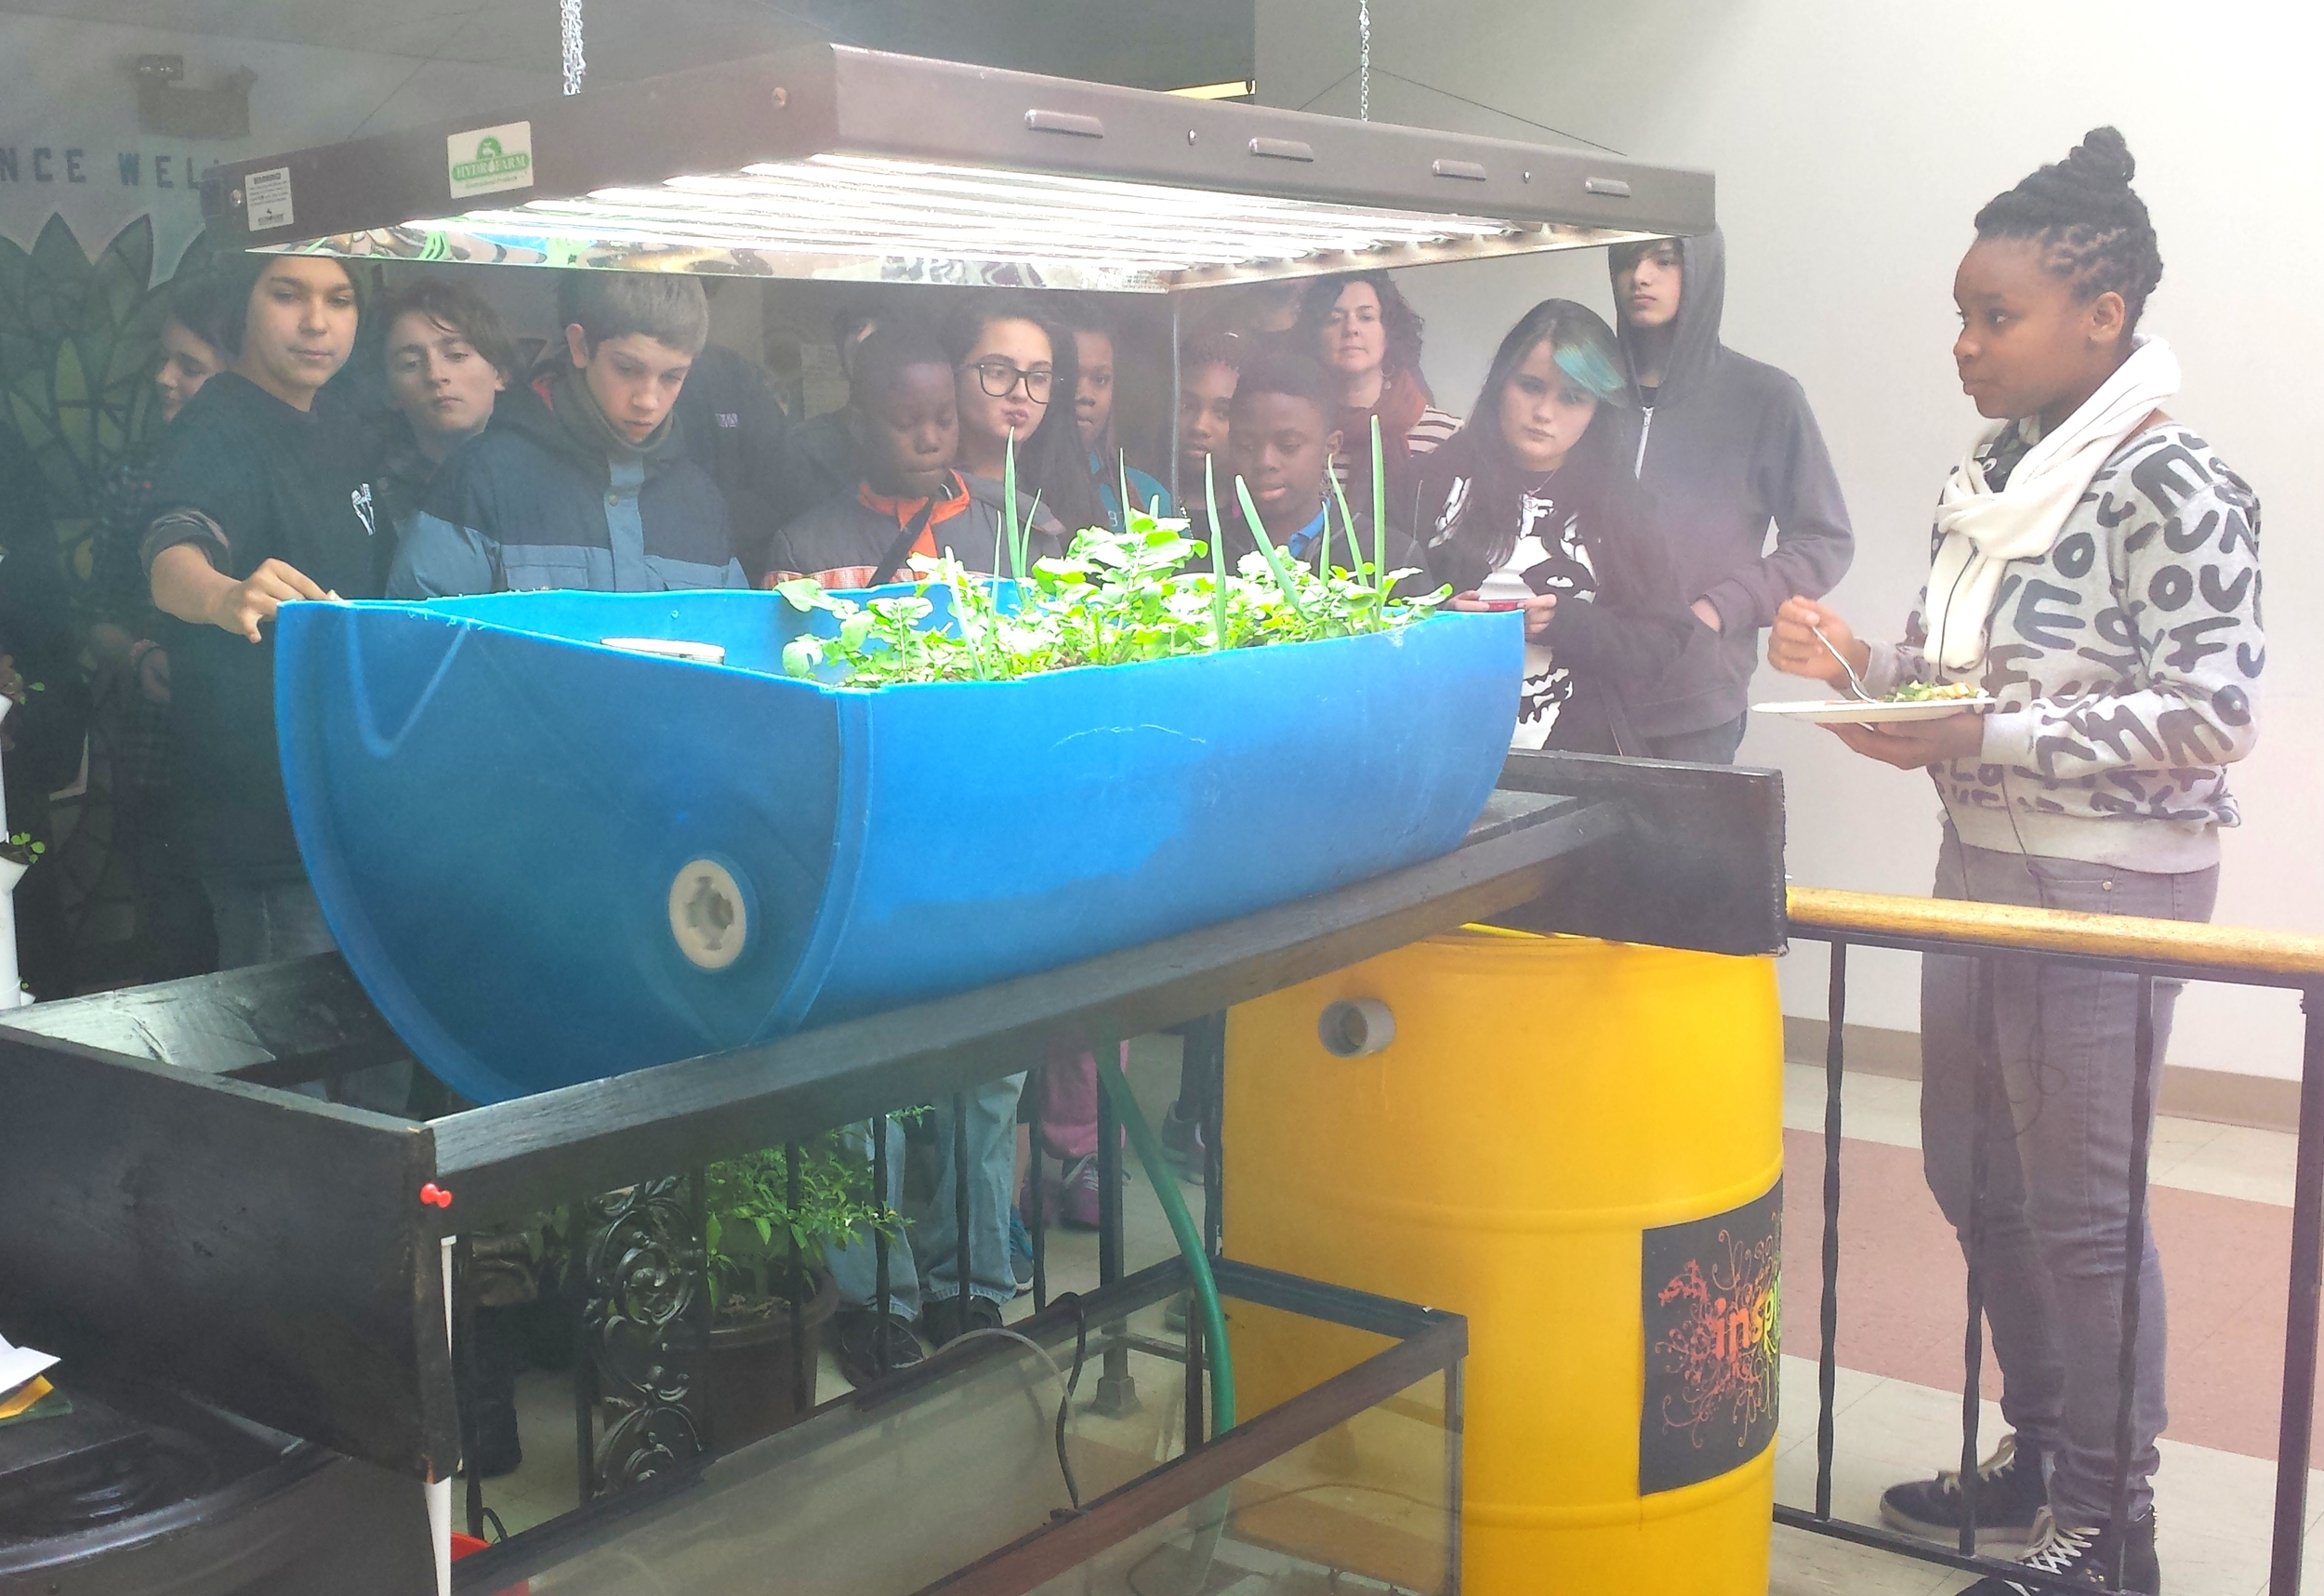 KI Ecocenter's aquaponics system; the students on the left are from KI's neighbor school, Project Libertas.